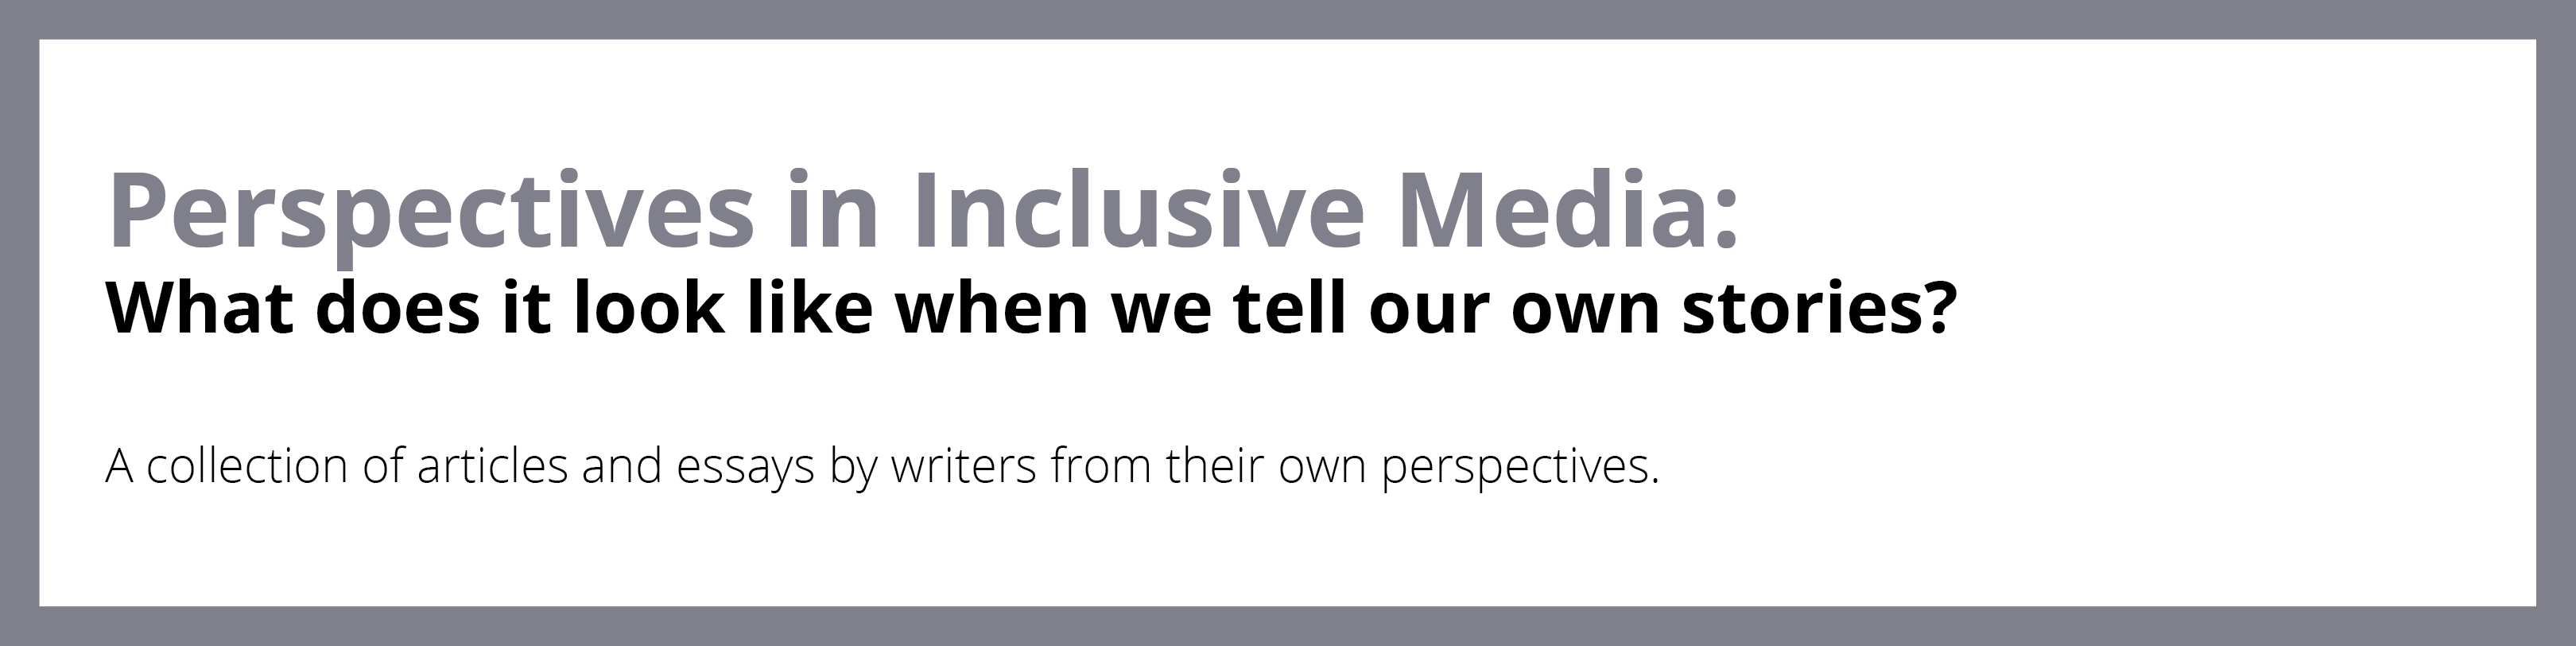 Perspectives in Inclusive Media. What does it look like when we tell our own stories? Download the PDF